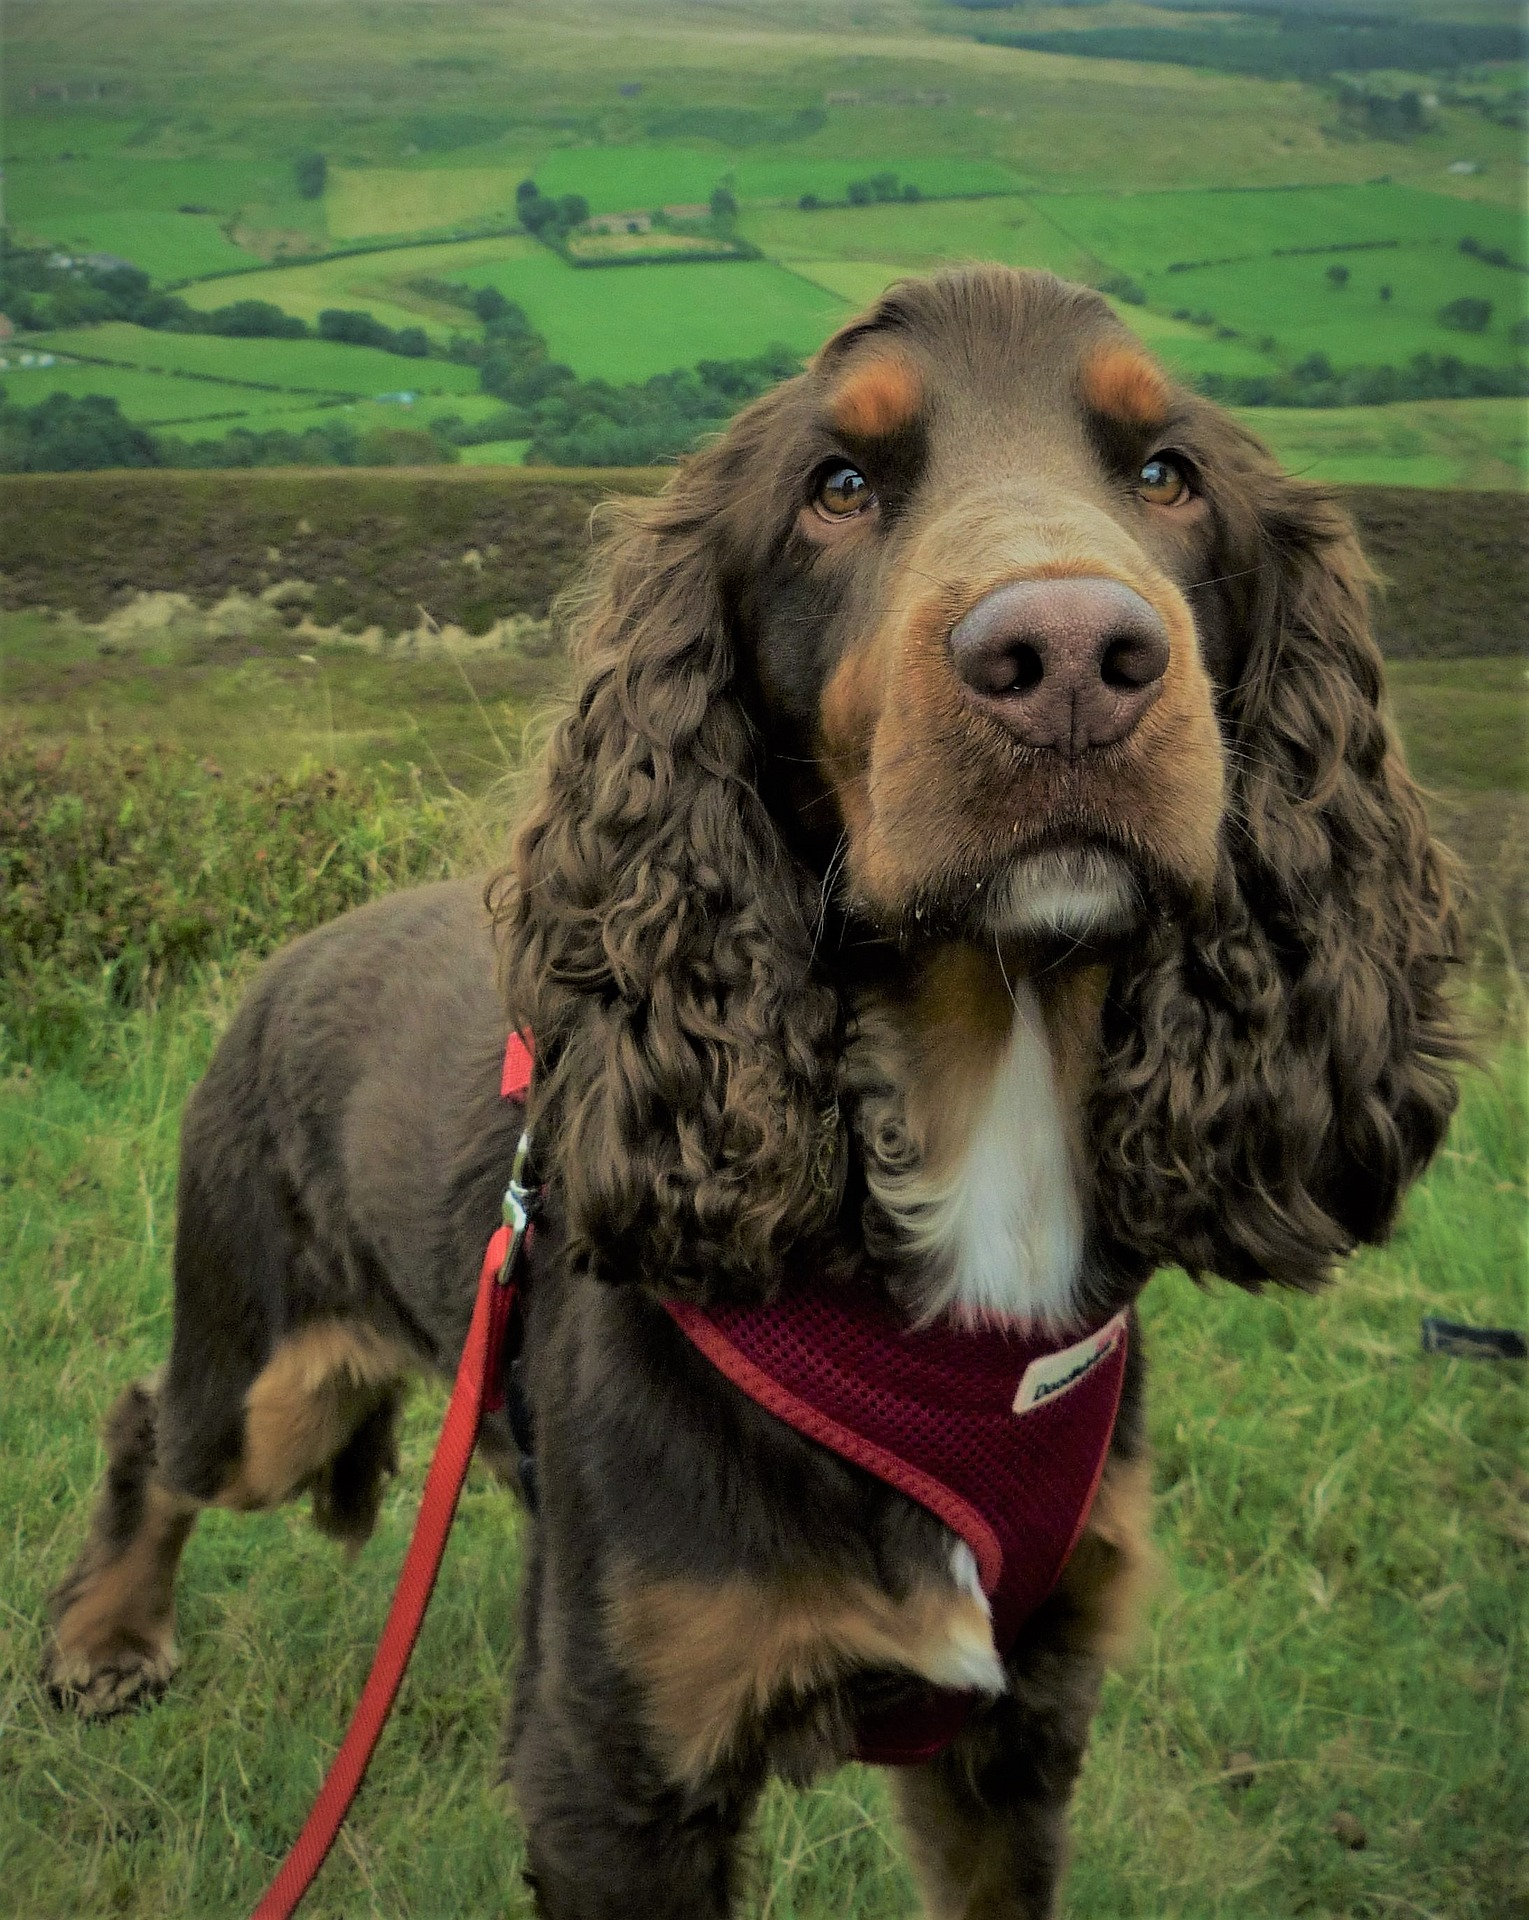 Cockspaniel Hair Cuts and Grooming Tips for the Breed